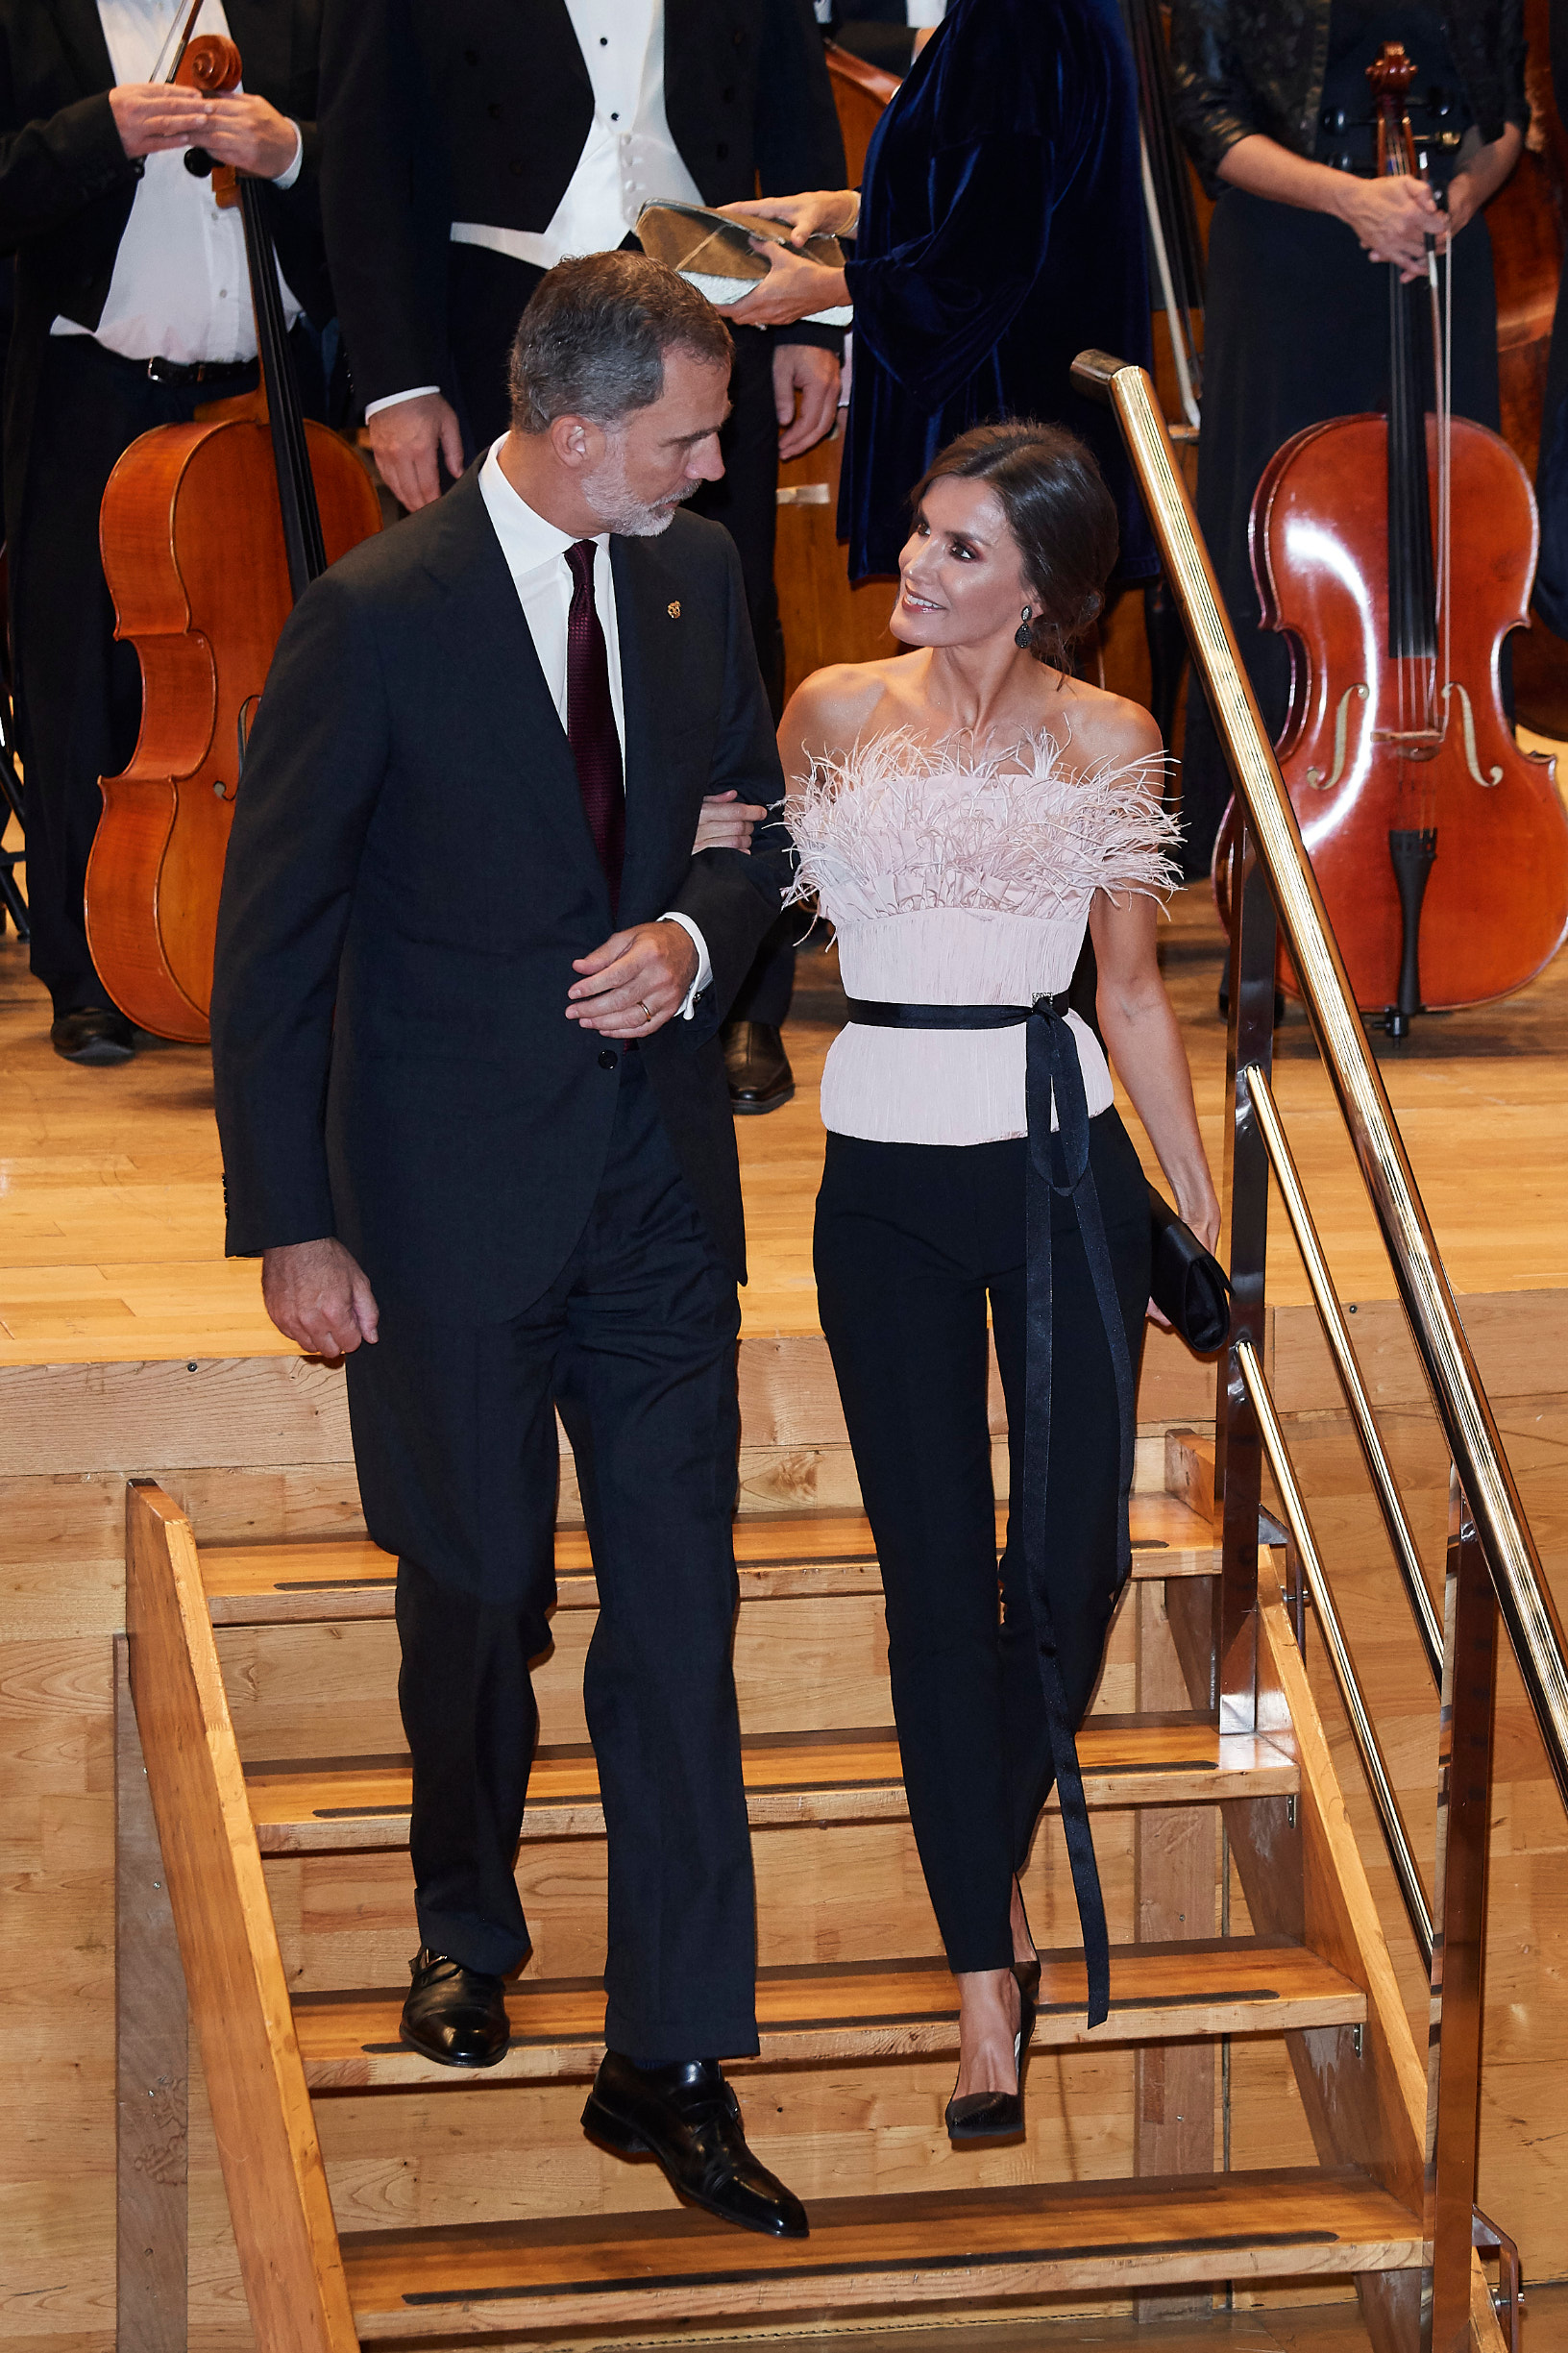 OVIEDO, SPAIN - OCTOBER 17: King Felipe VI of Spain and Queen Letizia of Spain attend the 28th Princess of Asturias Awards Concert at Prince Felipe Auditorium during the 'Princess of Asturias Awards 2019' on October 17, 2019 in Oviedo, Spain. (Photo by Carlos Alvarez/Getty Images )